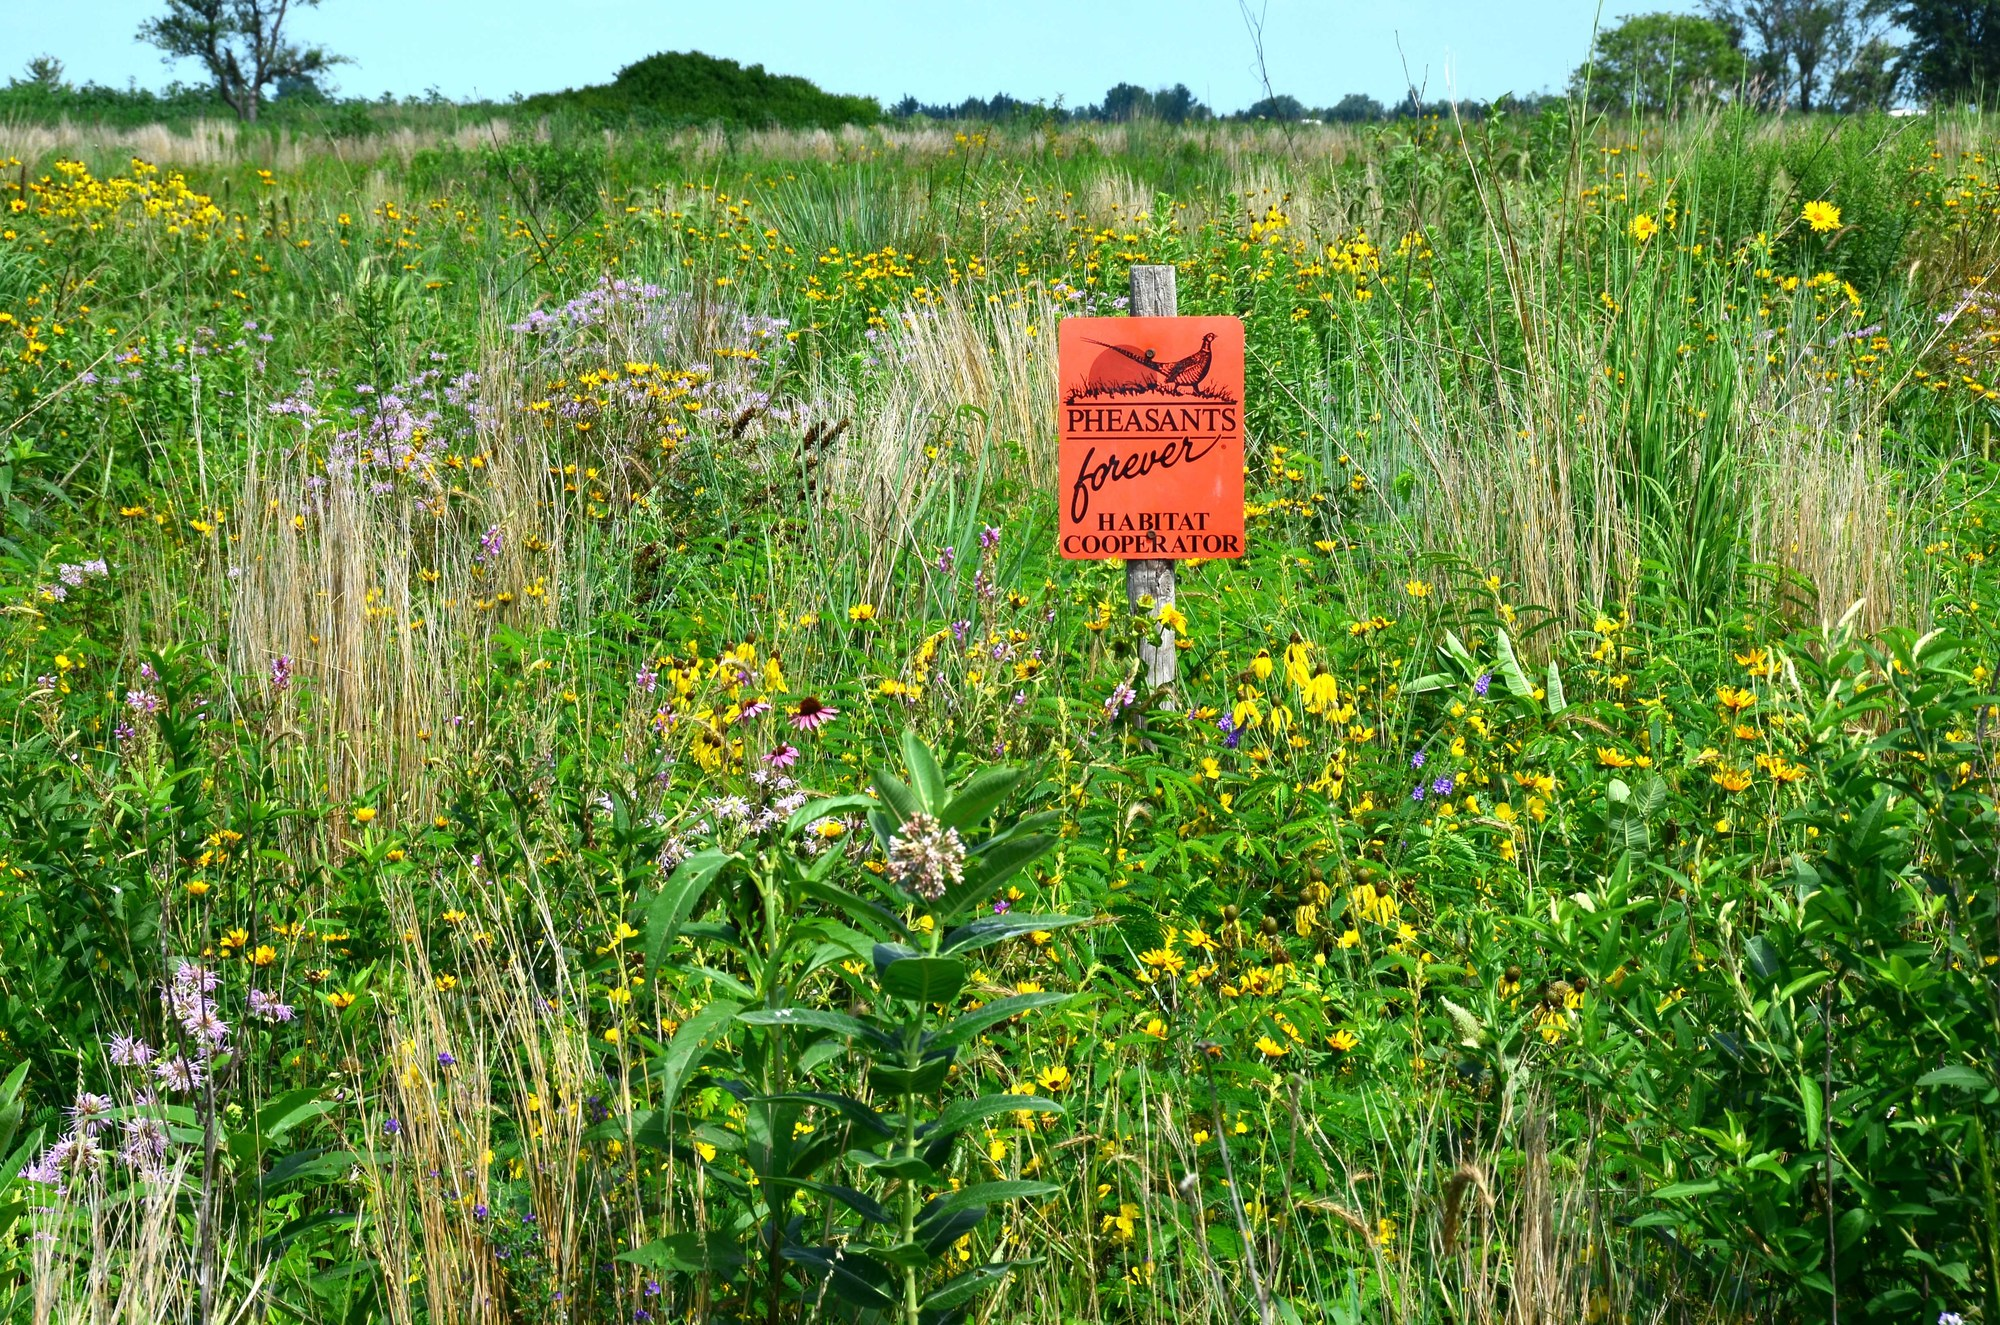 Grasslands are stunning when in full bloom in summertime (Photo by Pete Berthelsen).